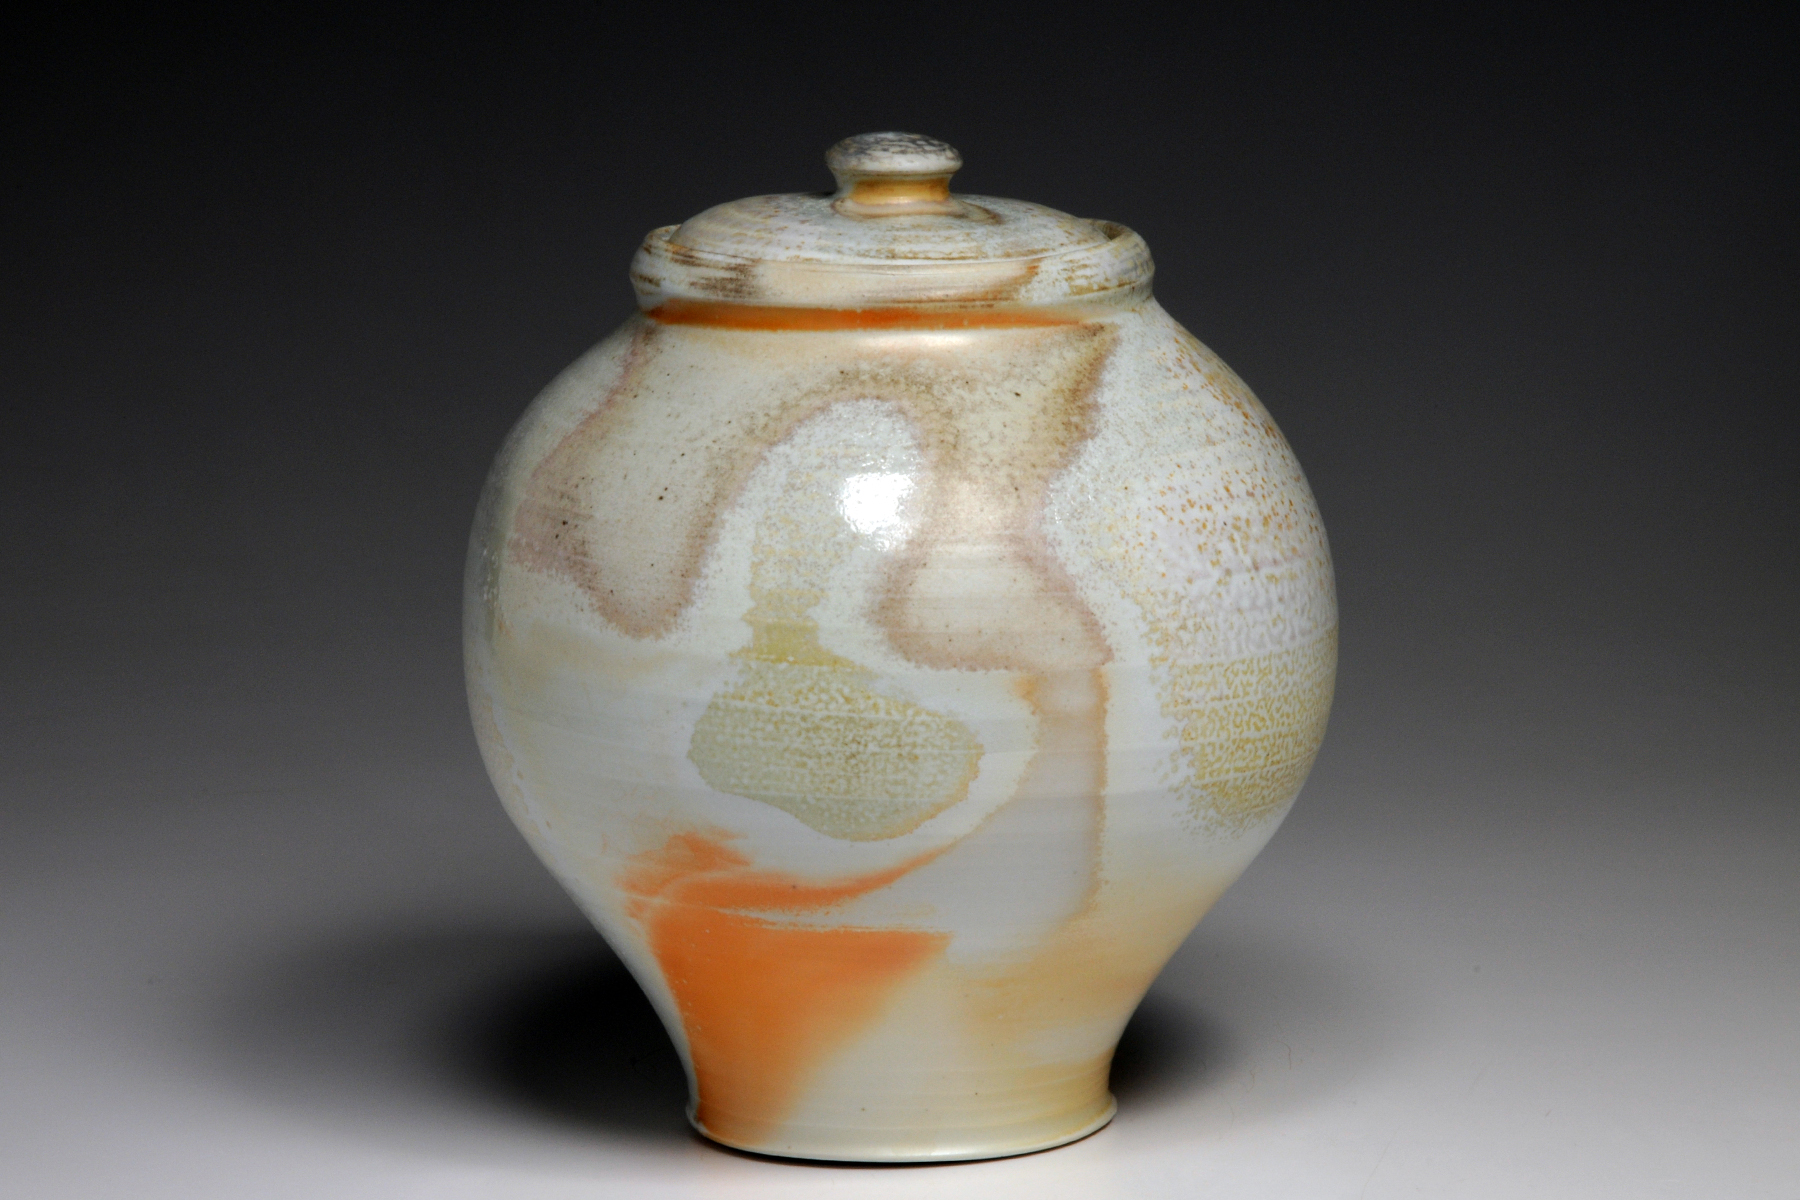 wood fired porcelain jar.